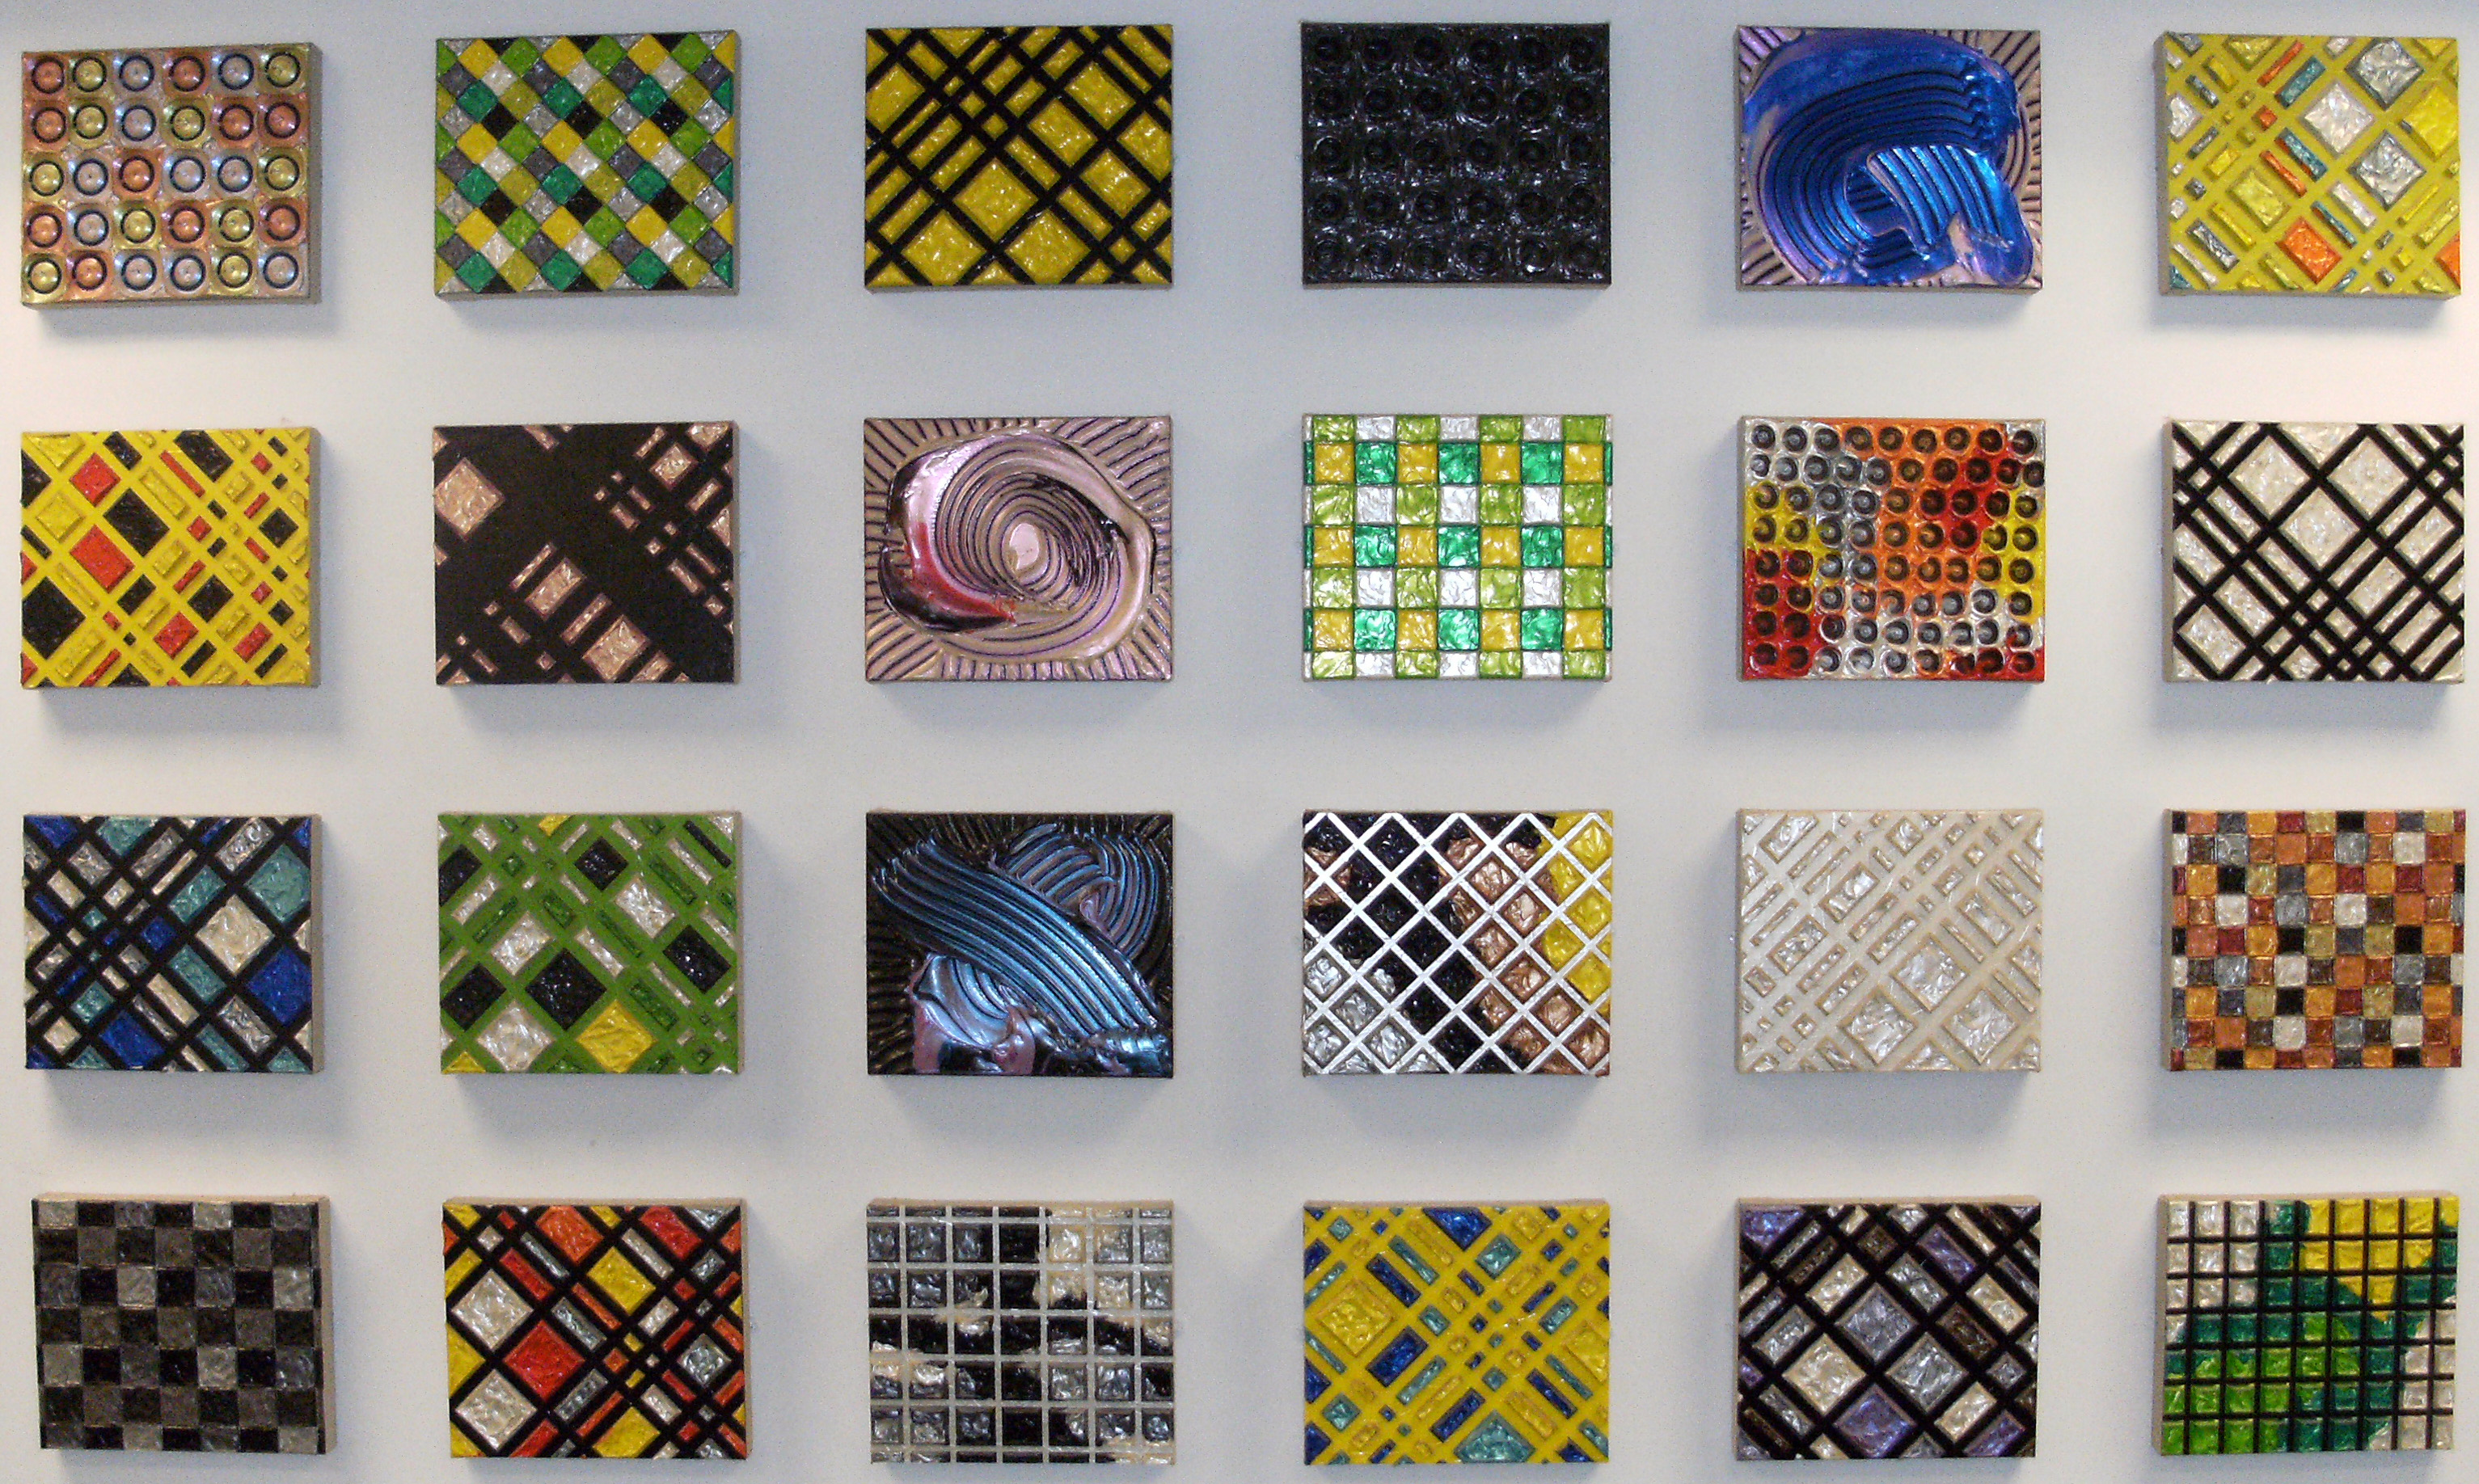 Twenty-four untitled works of art organized in a grid, 2005 - 2006, by Alberto Contreras. Gift from the artist. Located at Alexander Library.